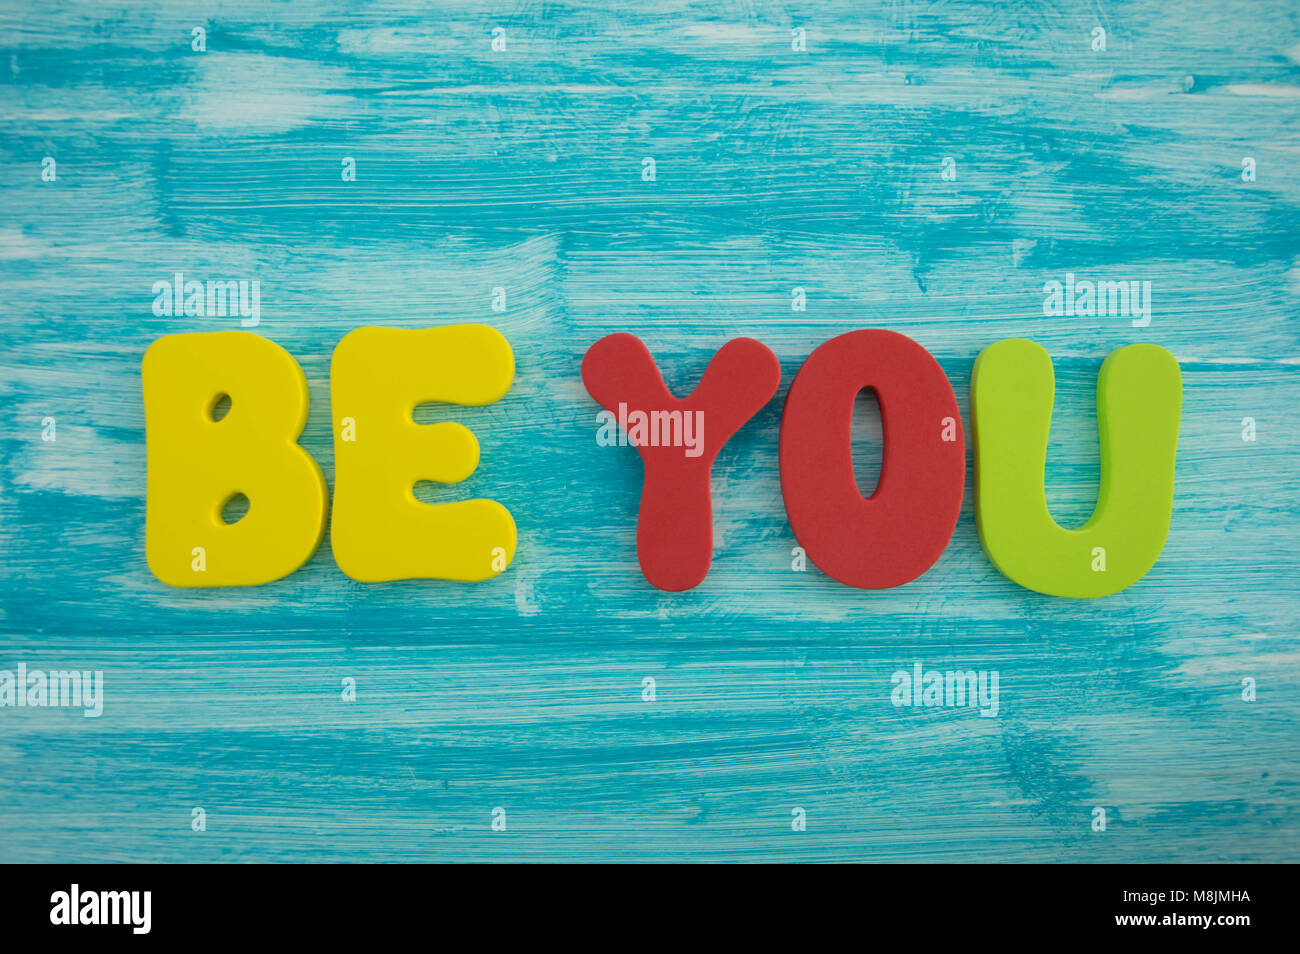 Be You in capital letters on blue colour wash wood background - Stock Image